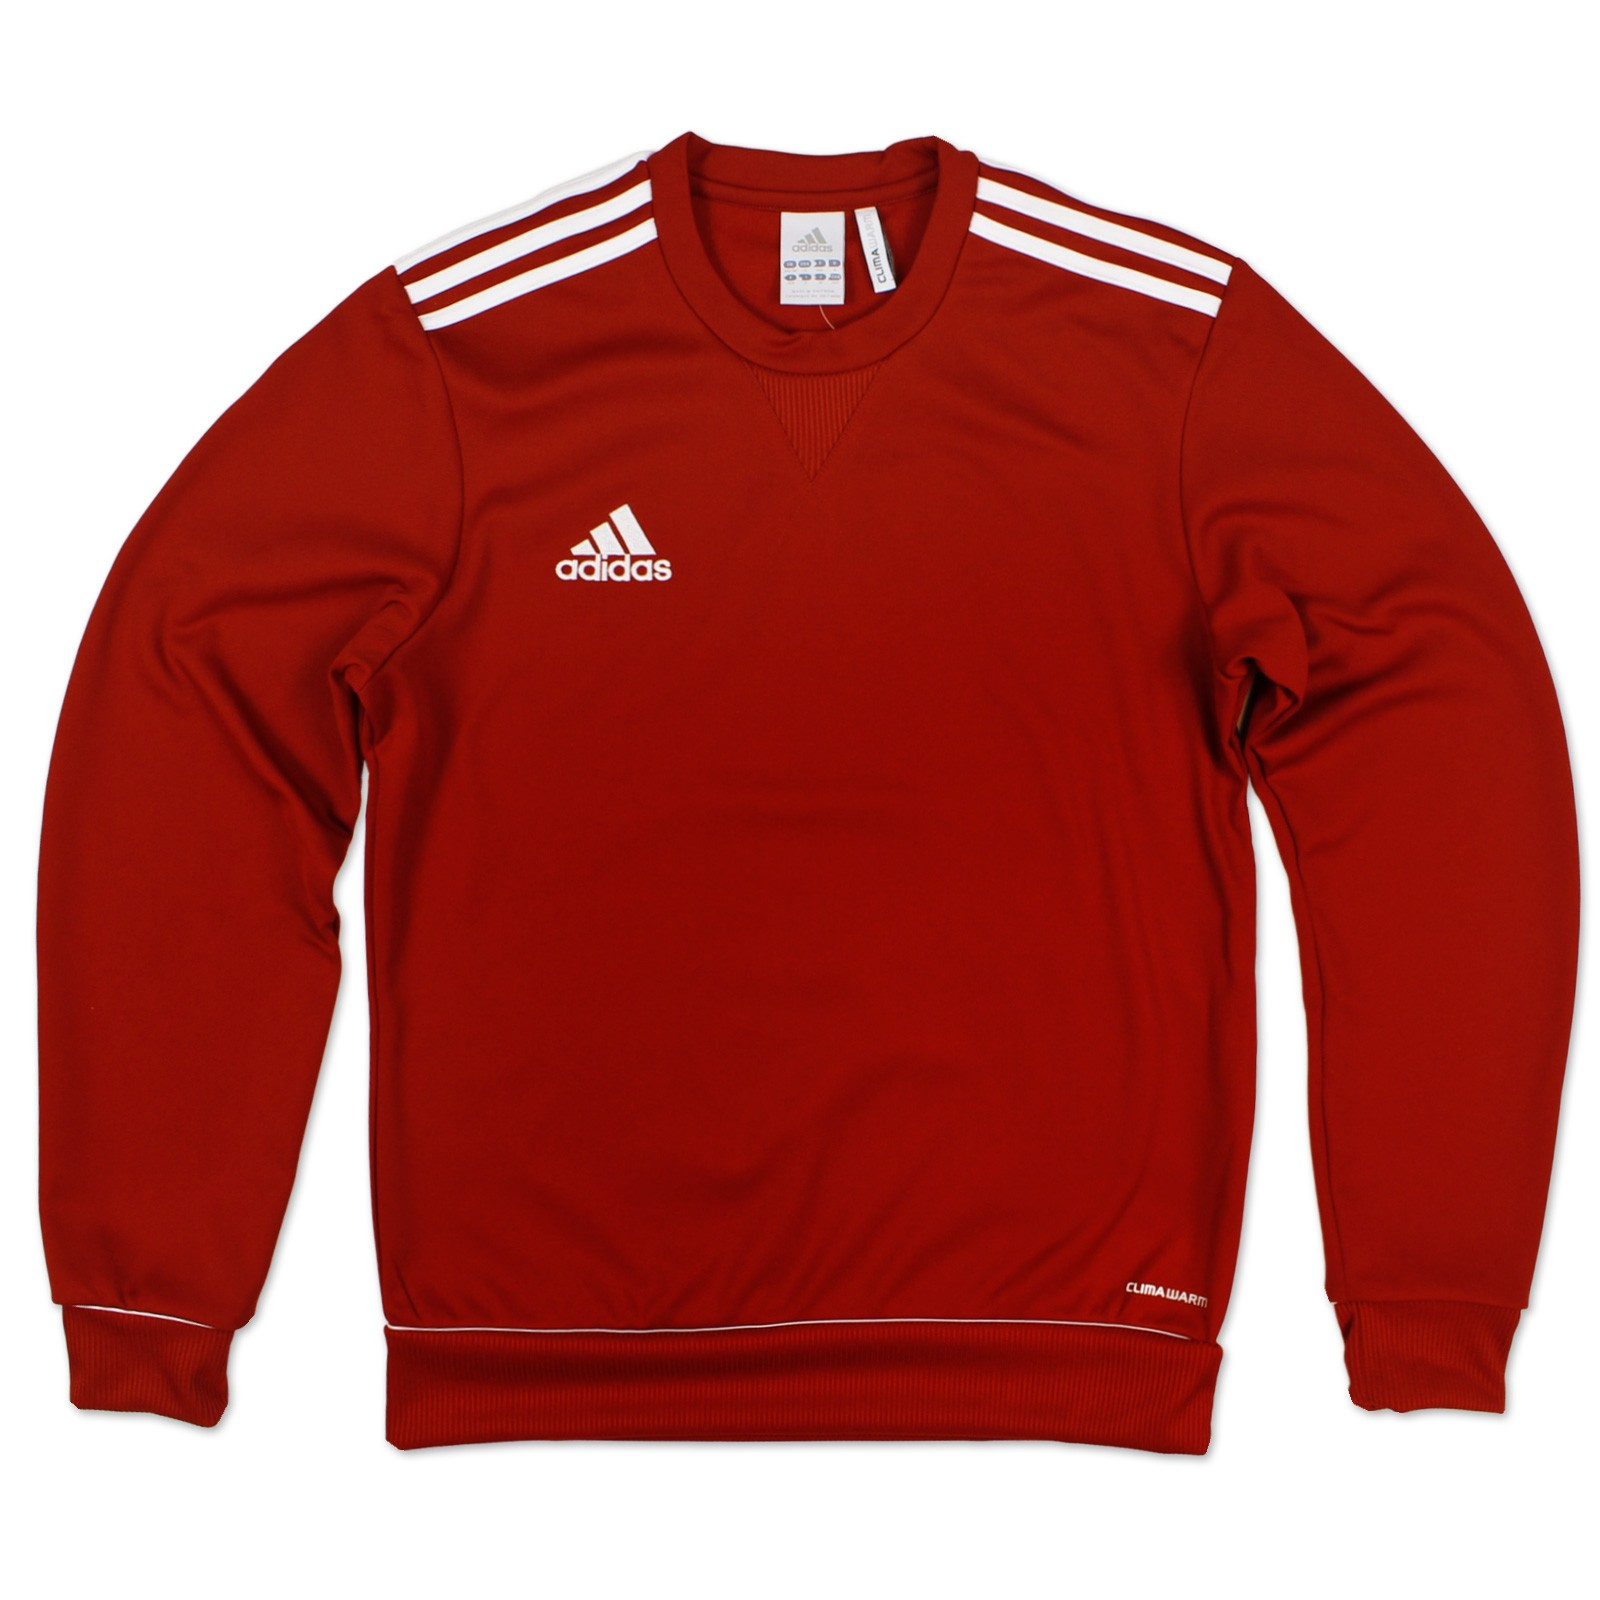 adidas performance men 39 s ess 3 s swt top sweatshirt. Black Bedroom Furniture Sets. Home Design Ideas